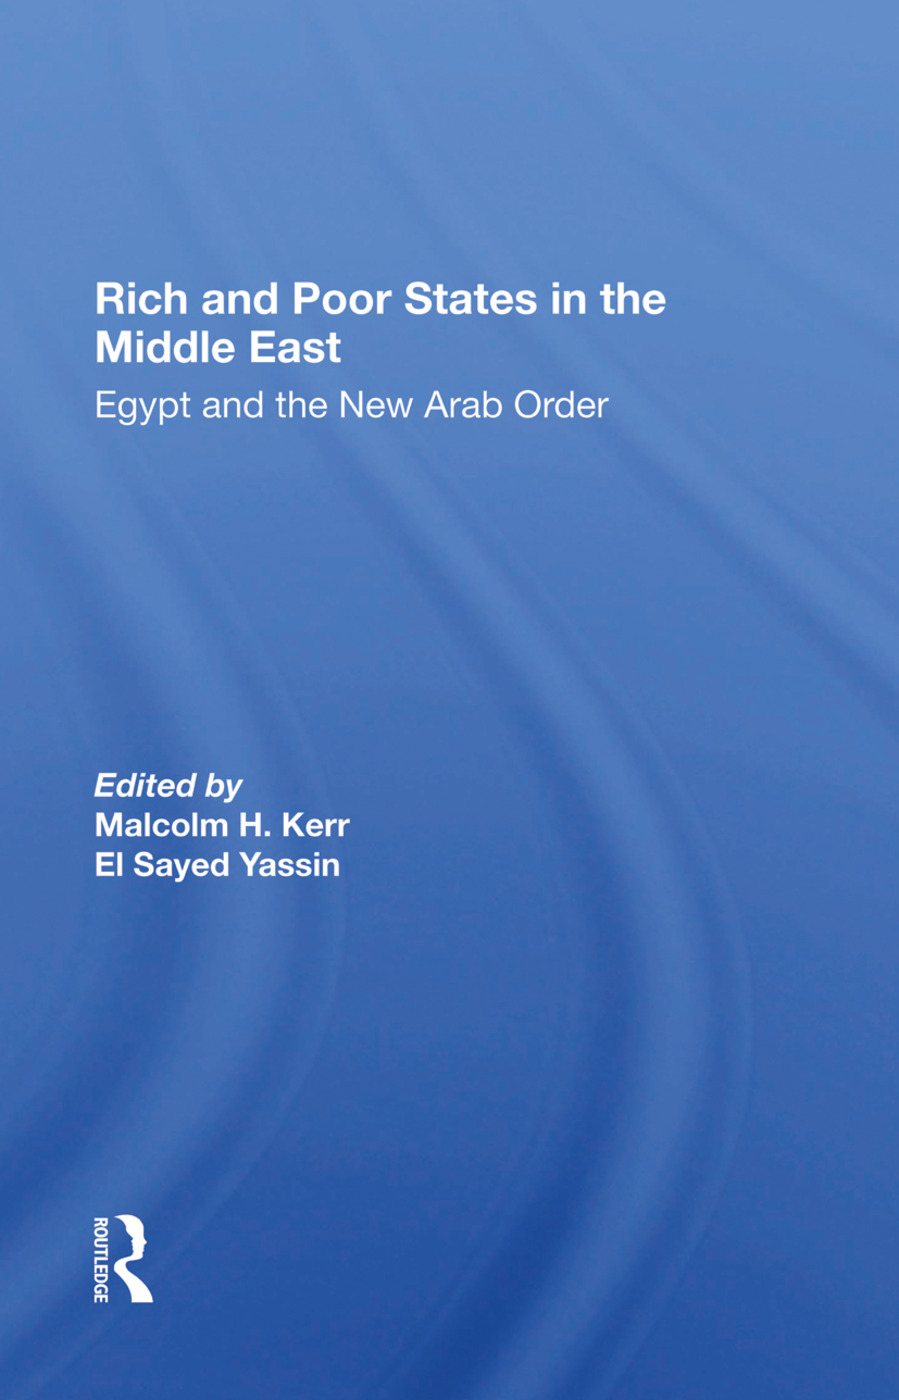 Rich And Poor States In The Middle East: Egypt And The New Arab Order, 1st Edition (Hardback) book cover